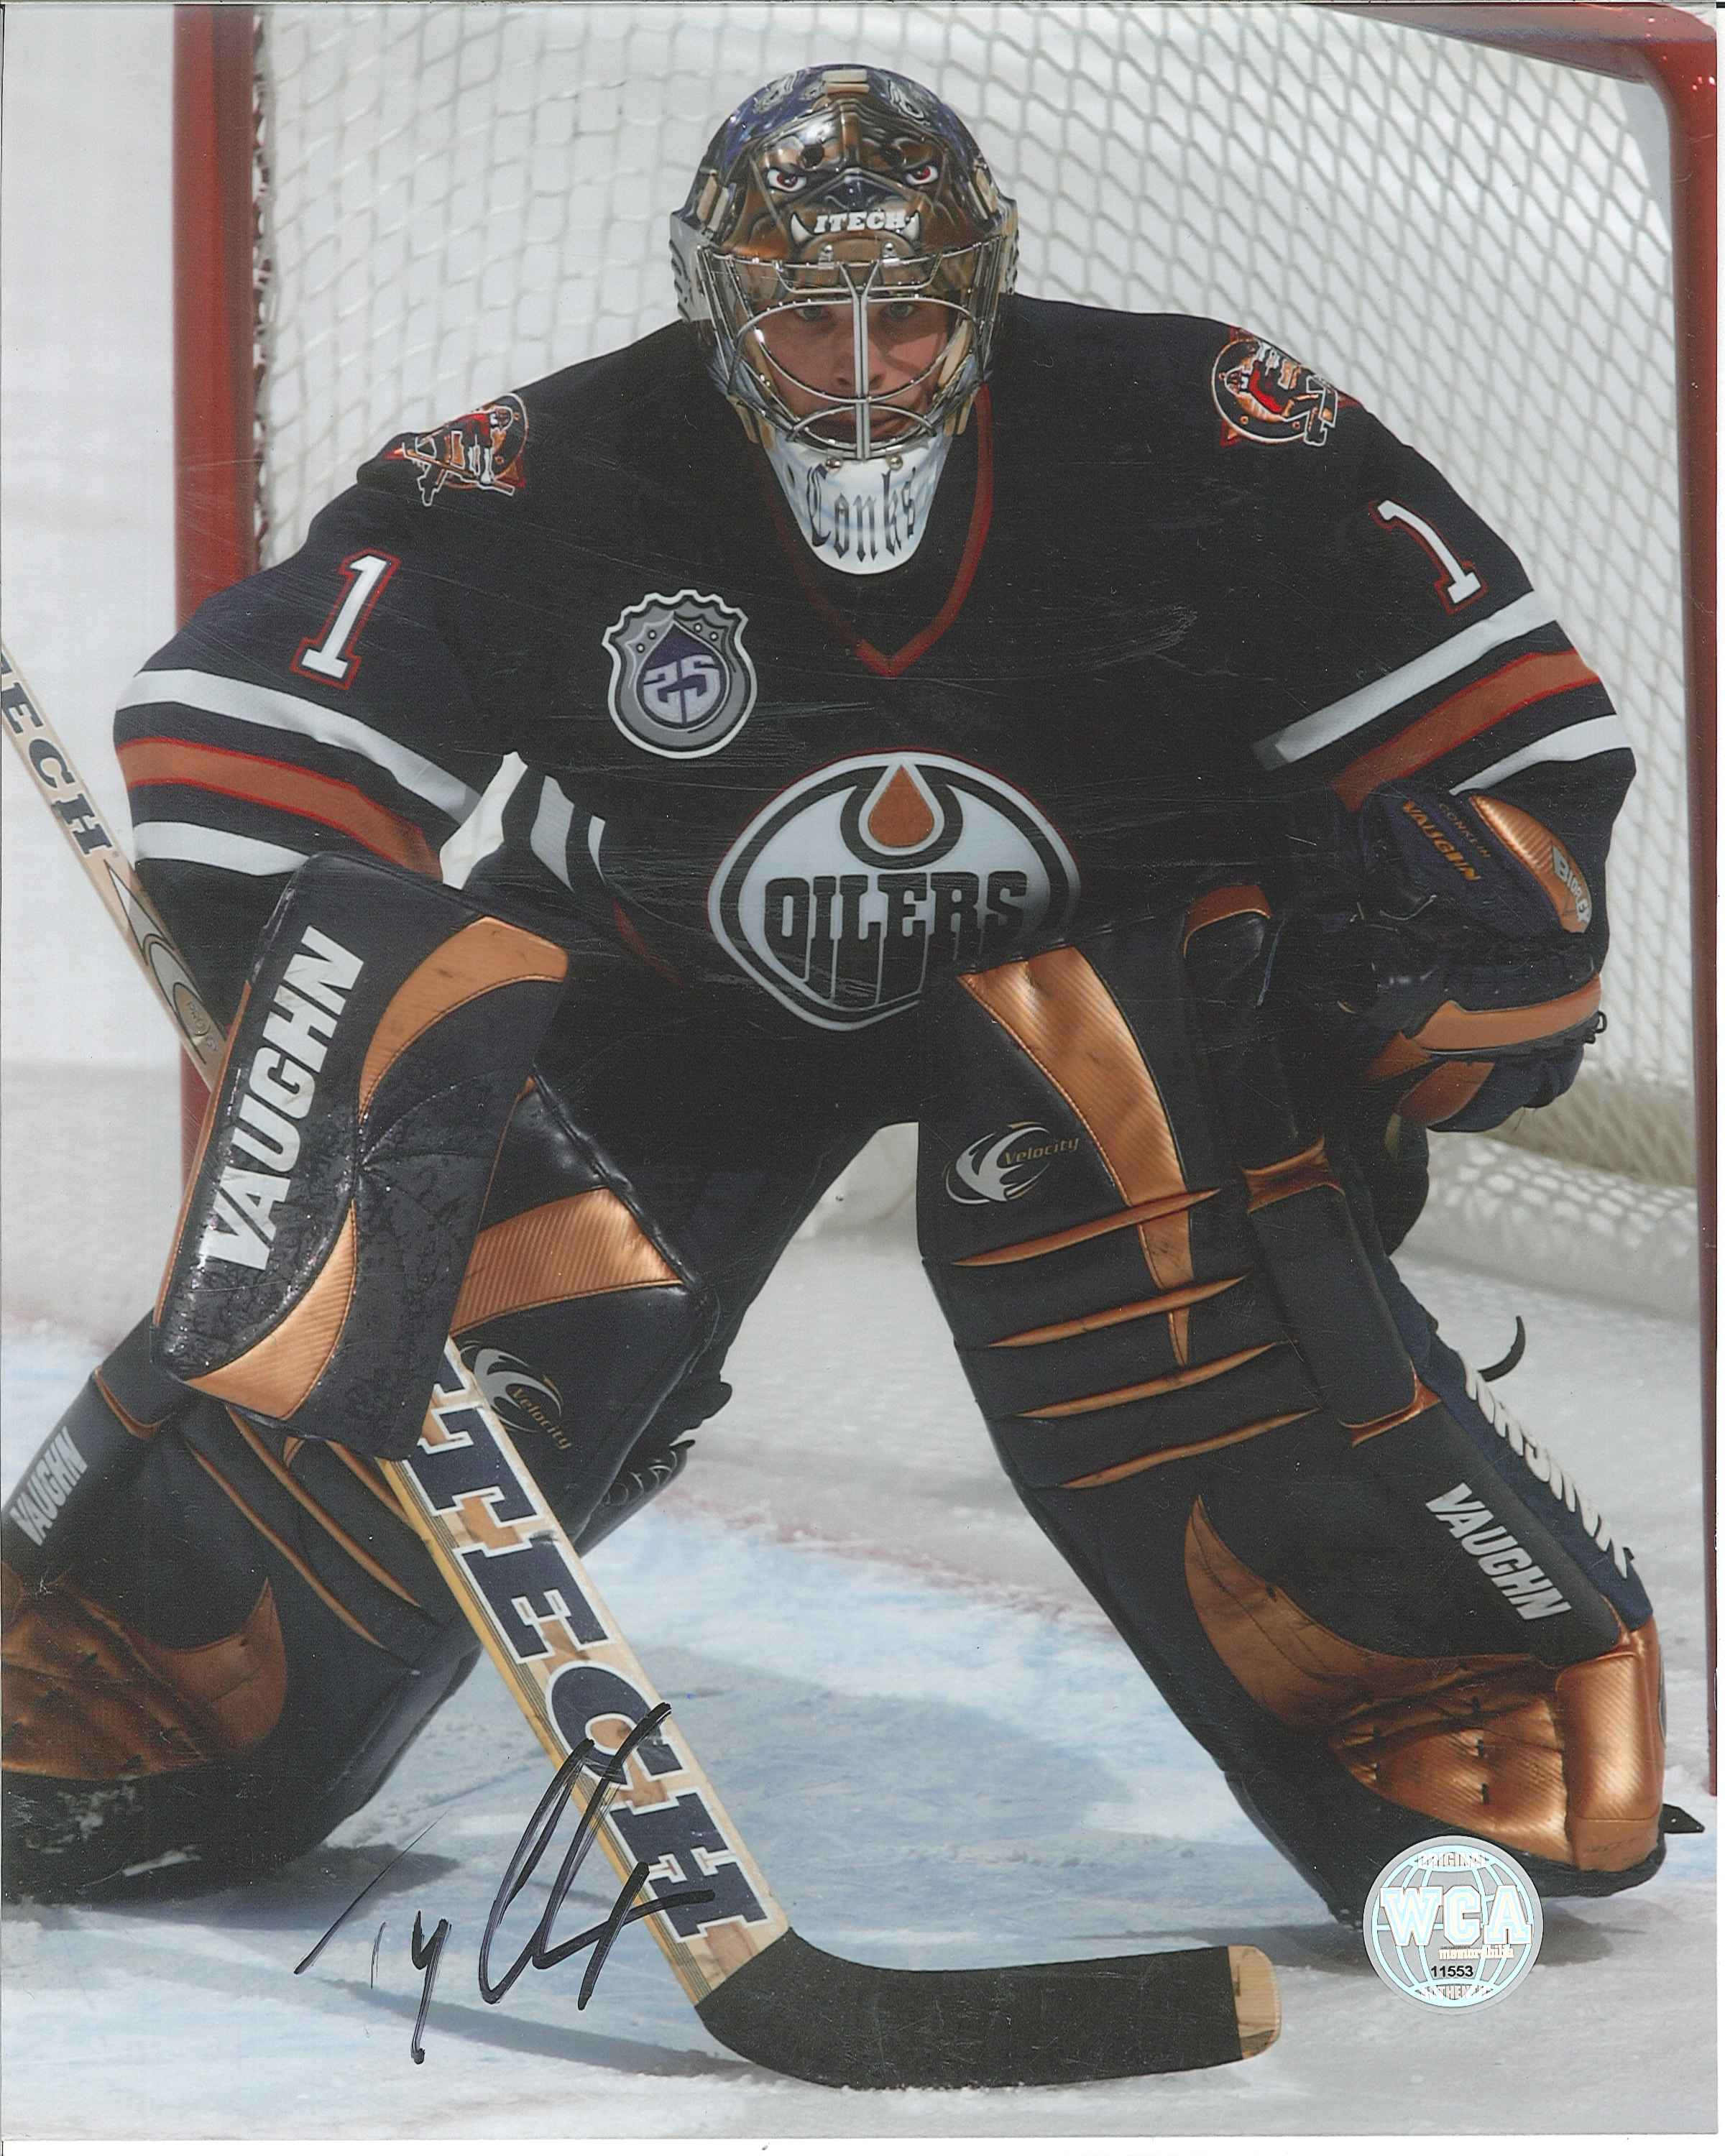 West_Coast_Authentic_NHL_Oilers_Ty_Conkl